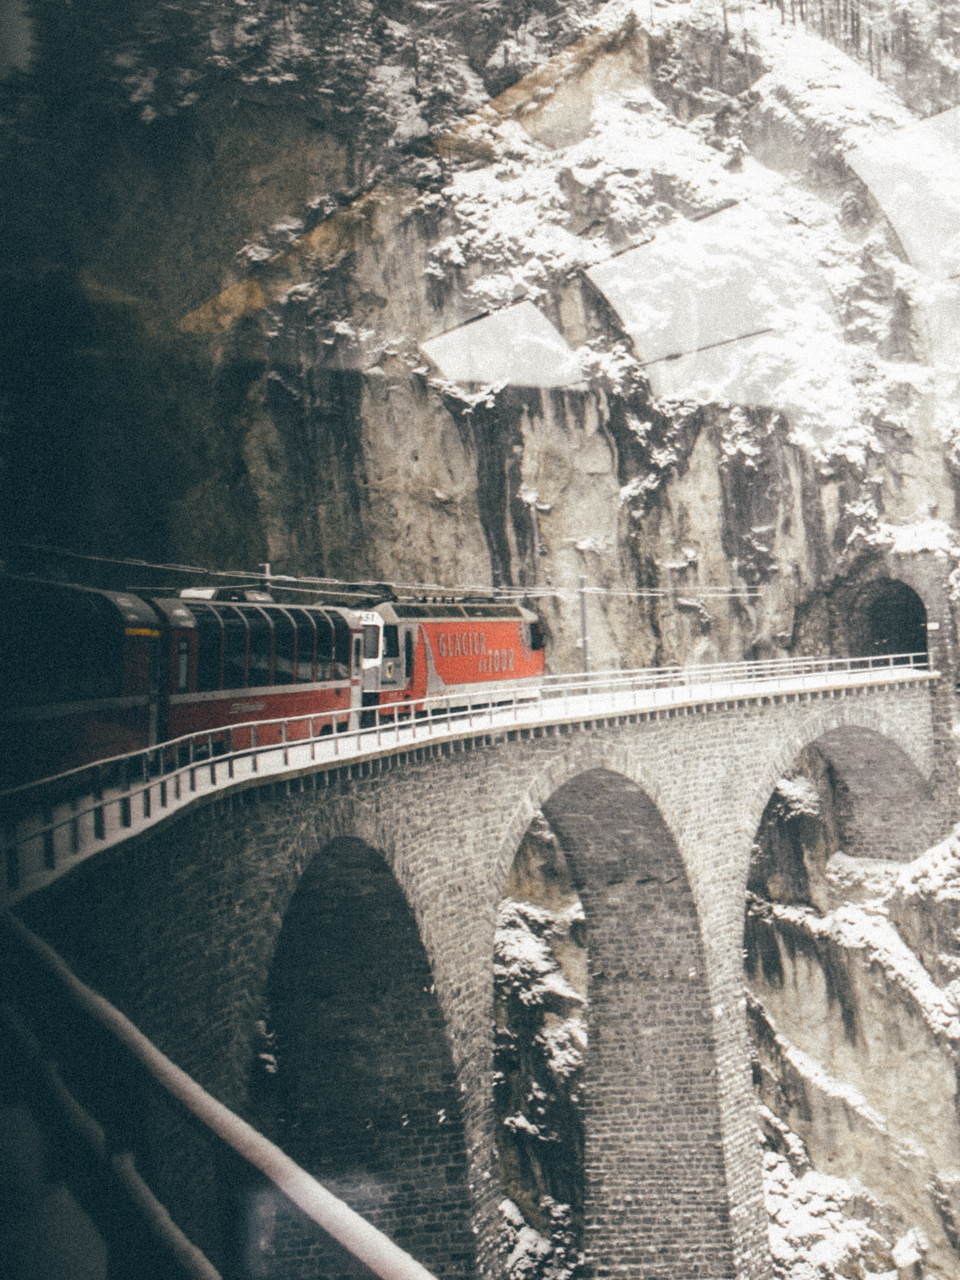 One of the 95 tunnels throughout the journey. title=Bernina Express entering tunnel.